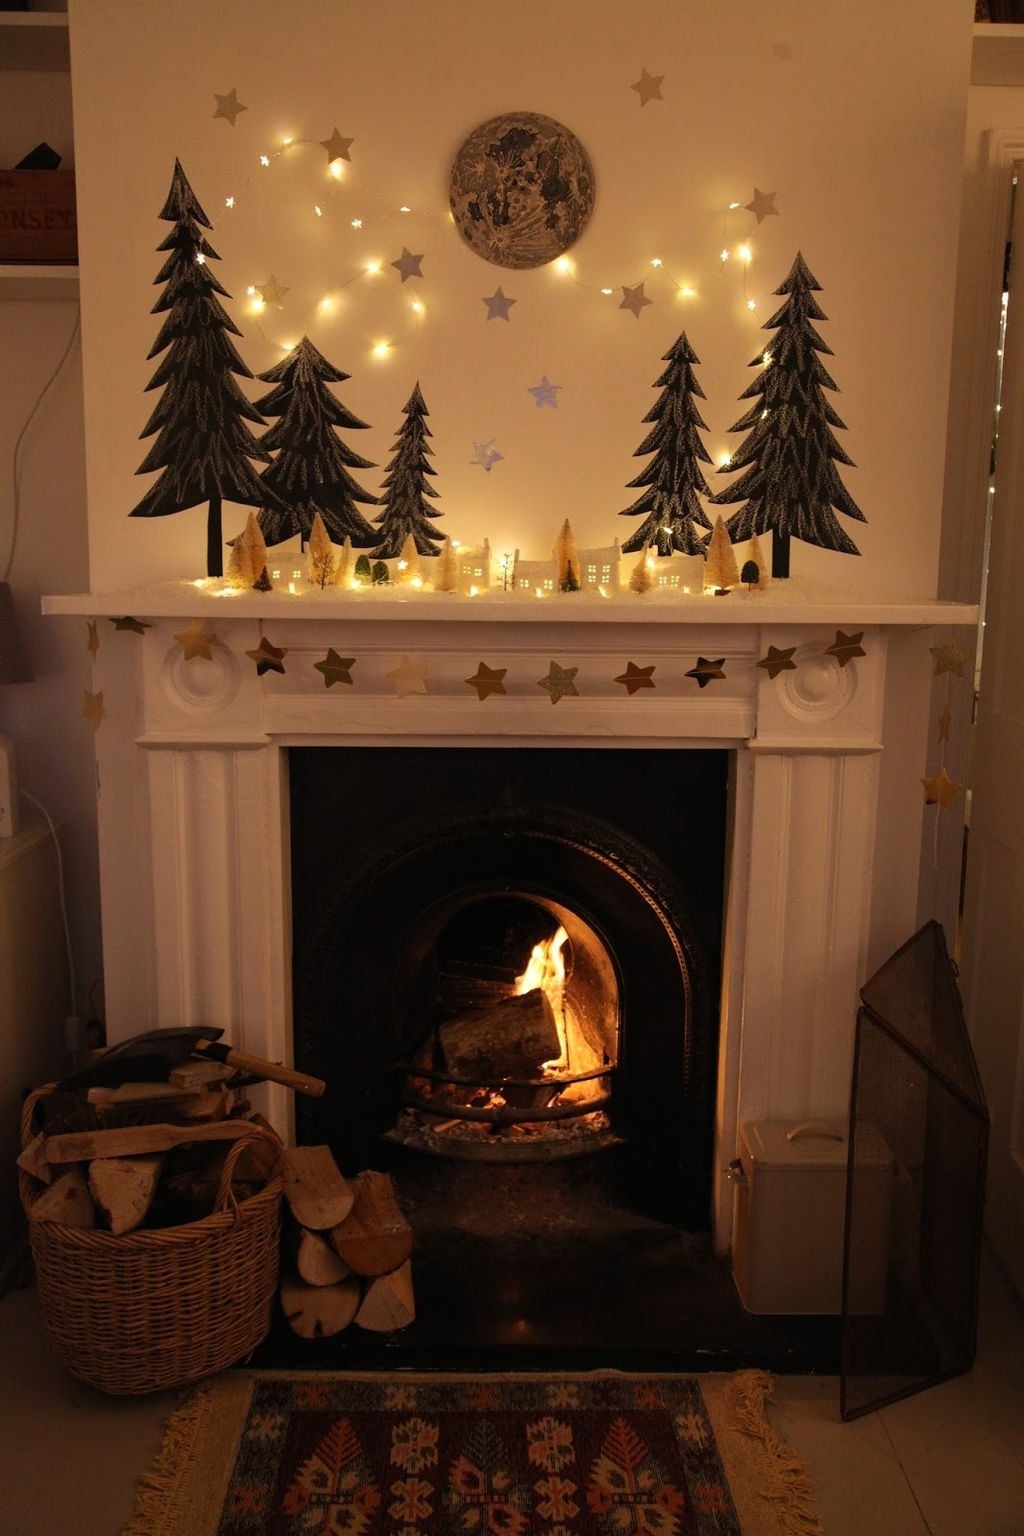 Cozy Fireplace Christmas Decoration Ideas To Makes Your Room Keep Warm23